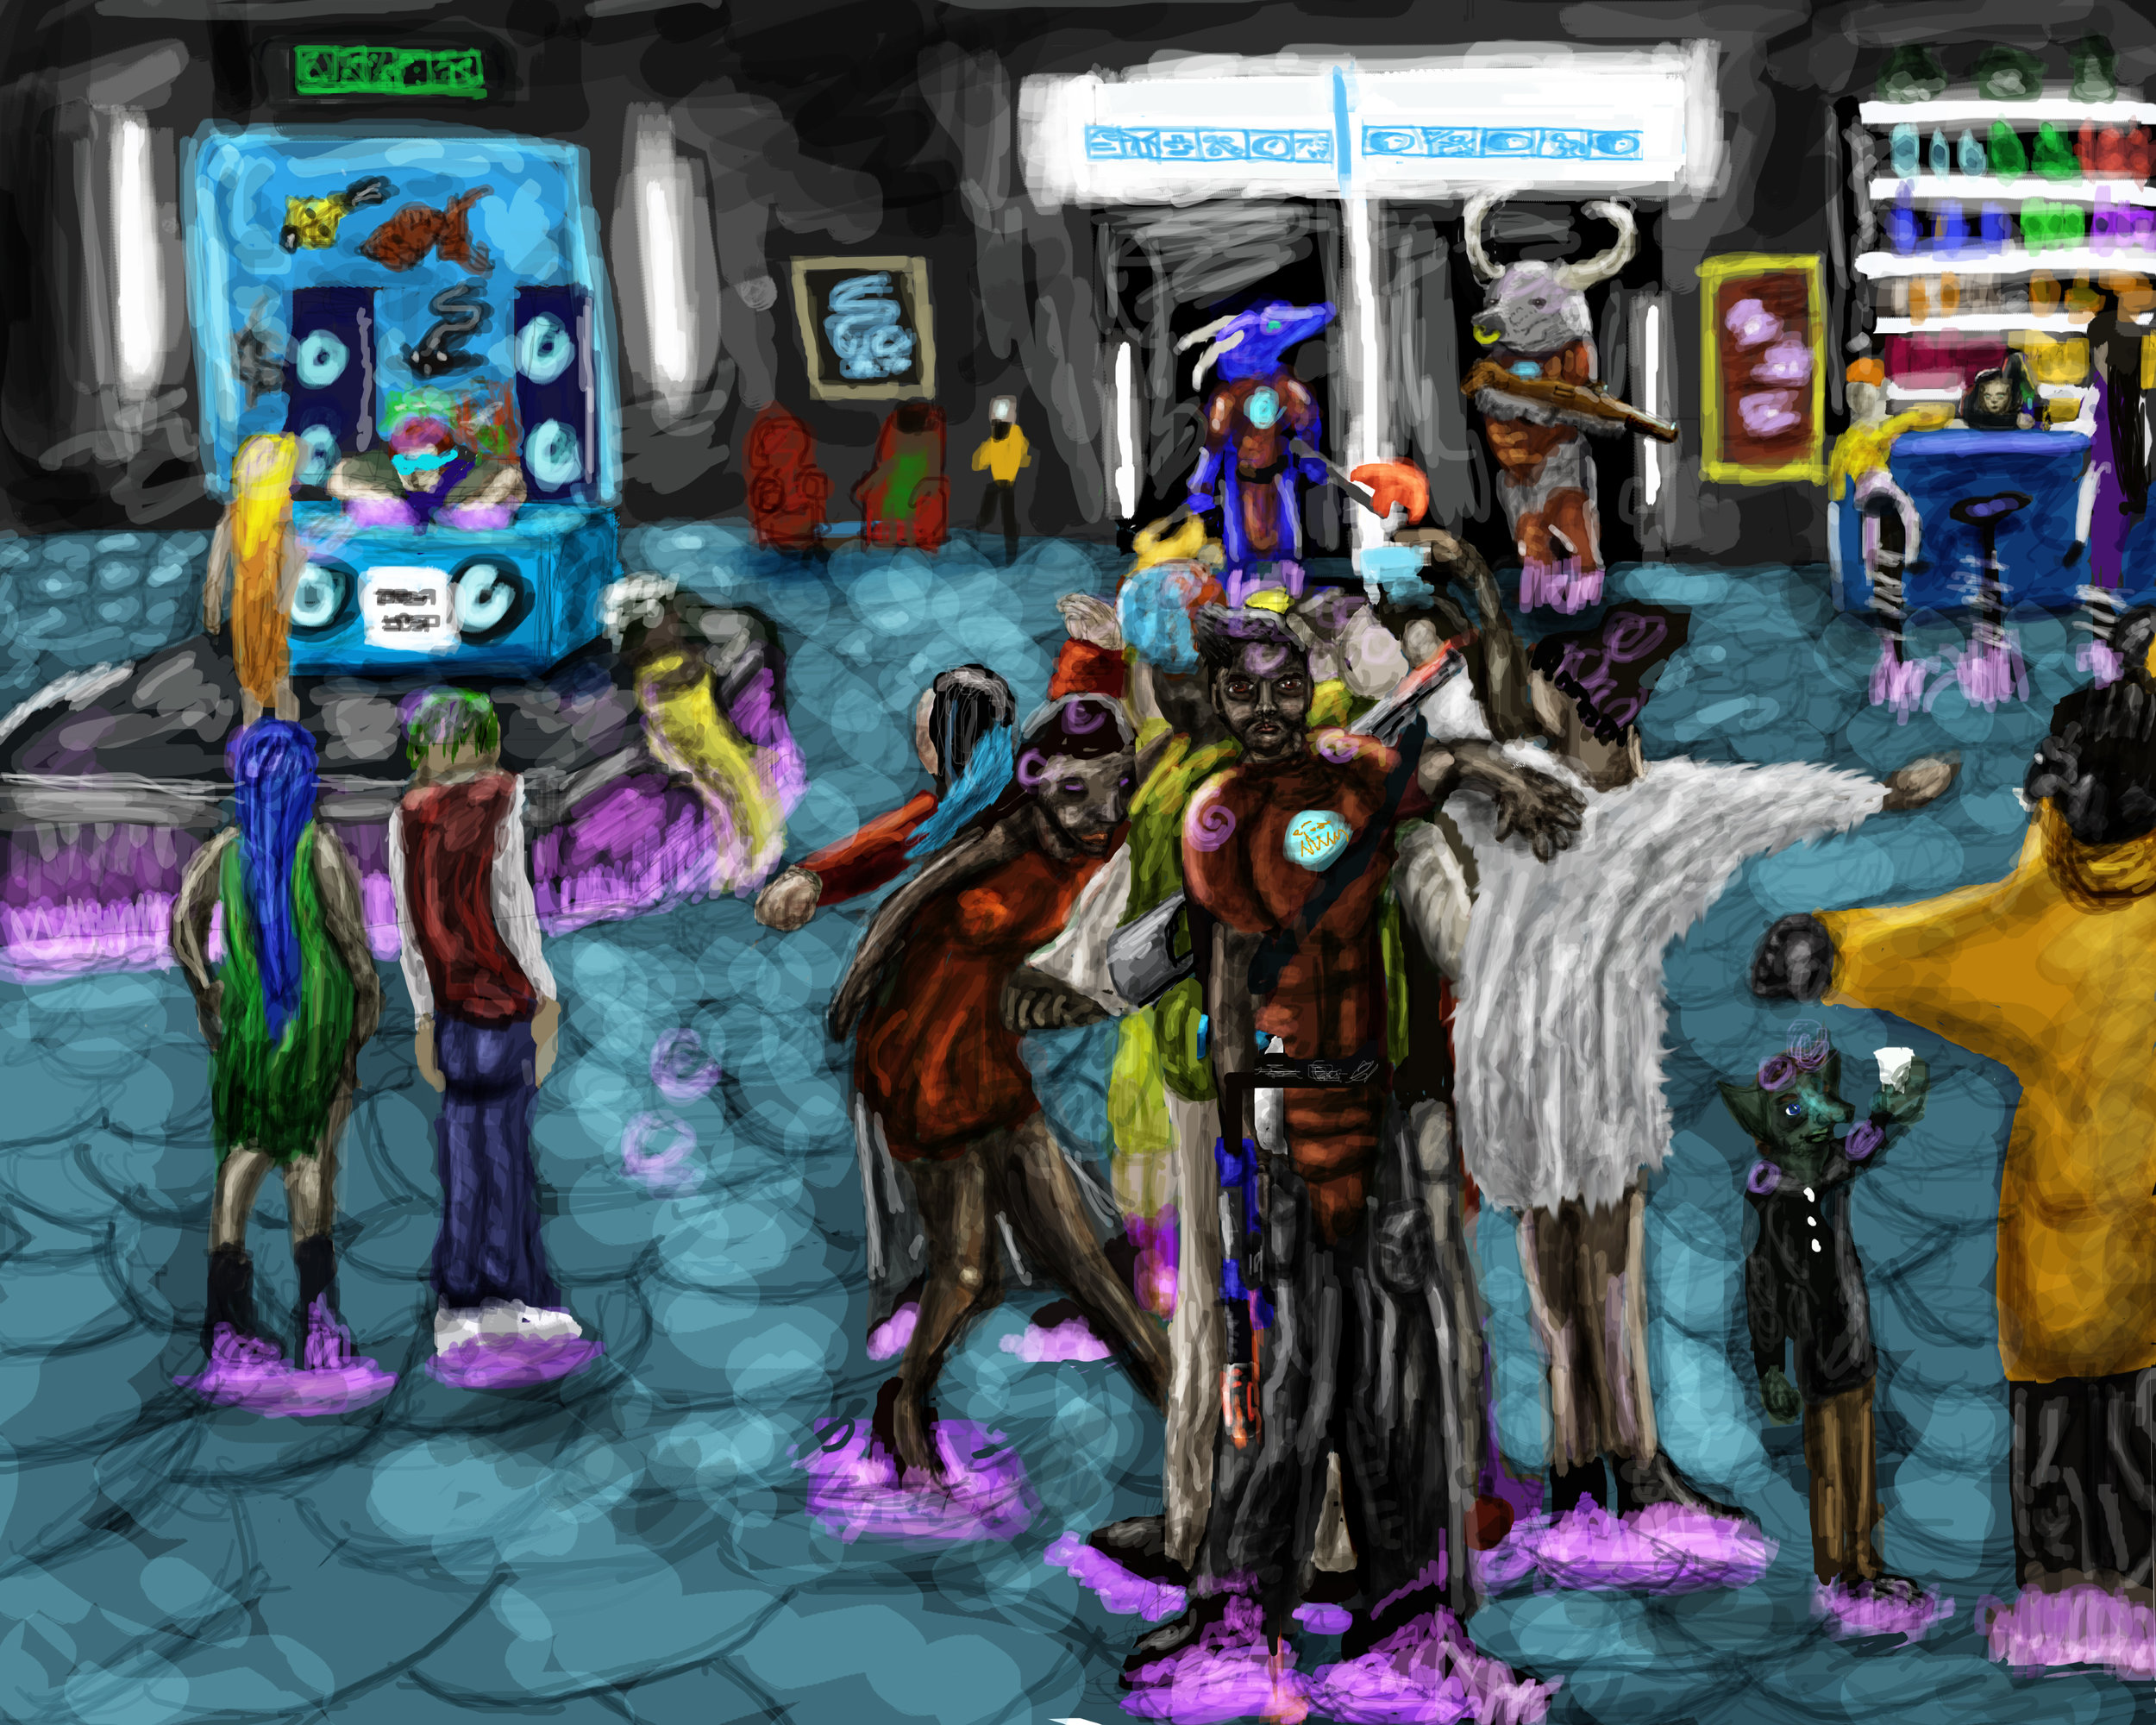 """""""Nightclub Rendevous"""" Blaze, agent of the CIC wades through the Nuchital Azatka nightclub to meet an informant for rebels against AIS backed government in Plesia."""